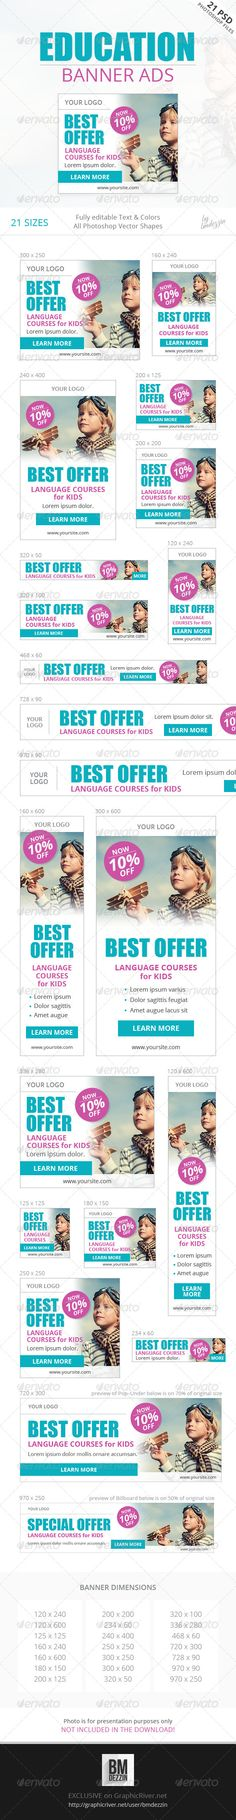 Education Banner Ads